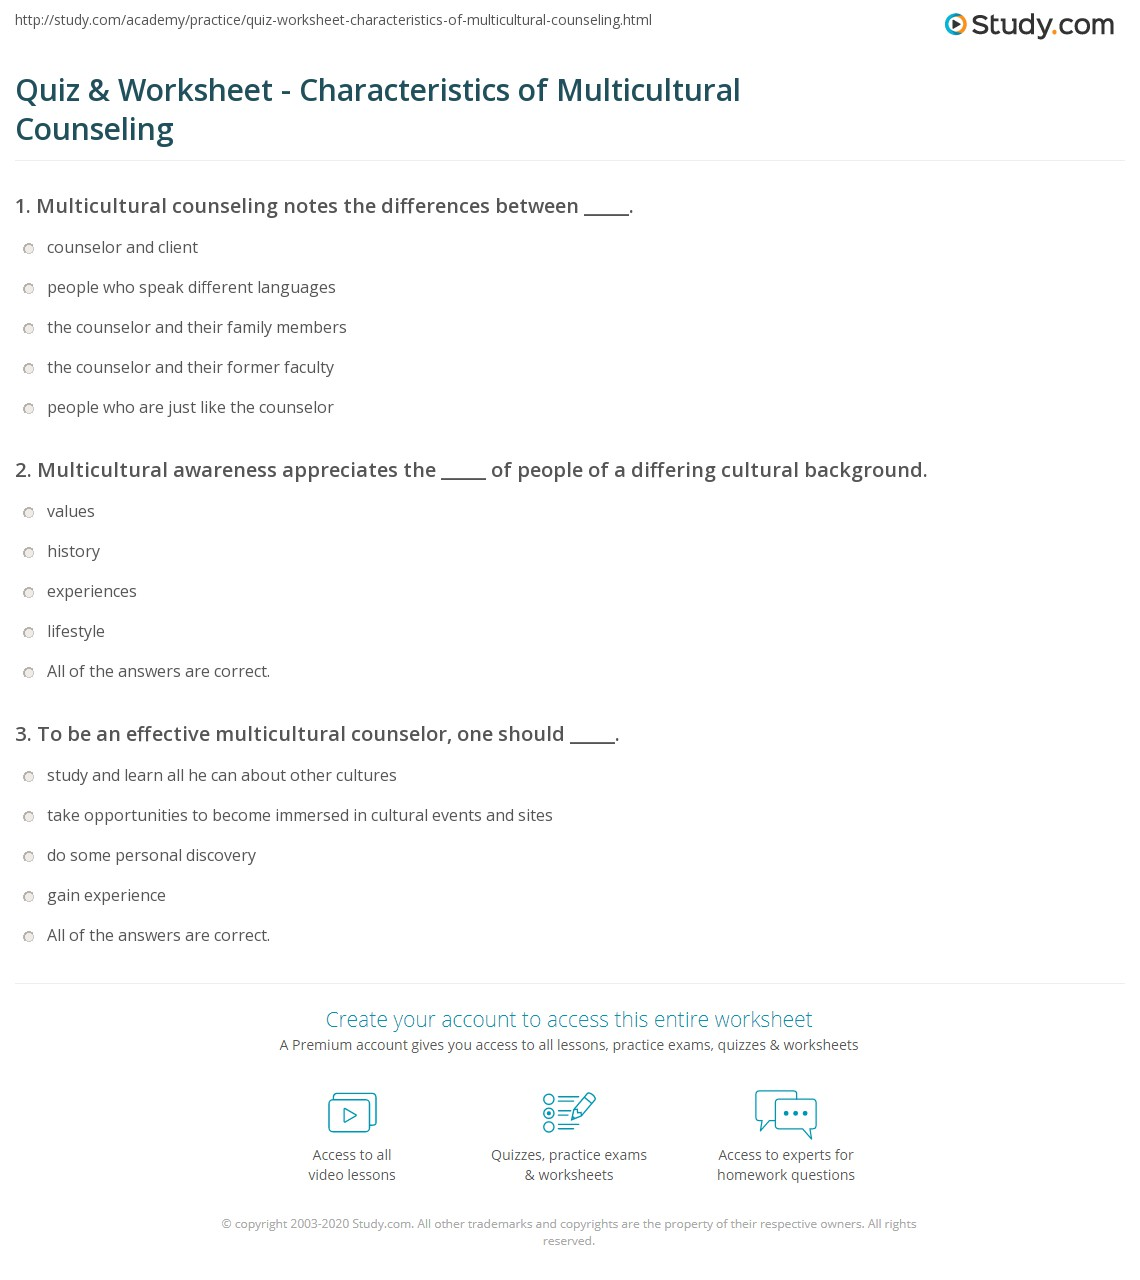 quiz worksheet characteristics of multicultural counseling print what is multicultural counseling worksheet